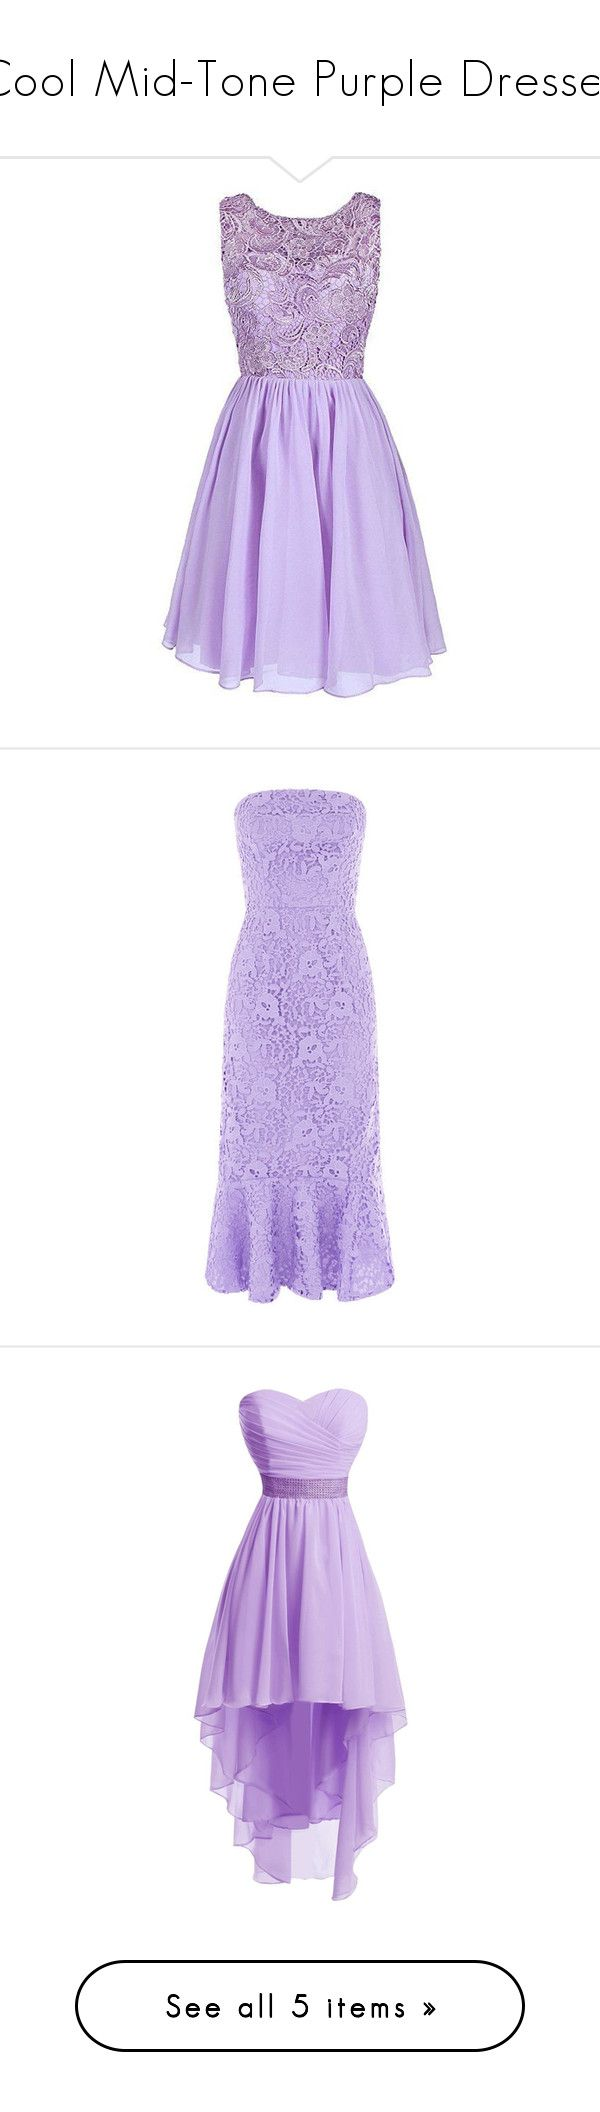 """Cool Mid-Tone Purple Dresses"" by tegan-b-riley on Polyvore featuring dresses, short homecoming dresses, purple prom dresses, purple formal dresses, prom dresses, short prom dresses, lace dress, lace evening dresses, strapless evening dresses and cocktail dresses"